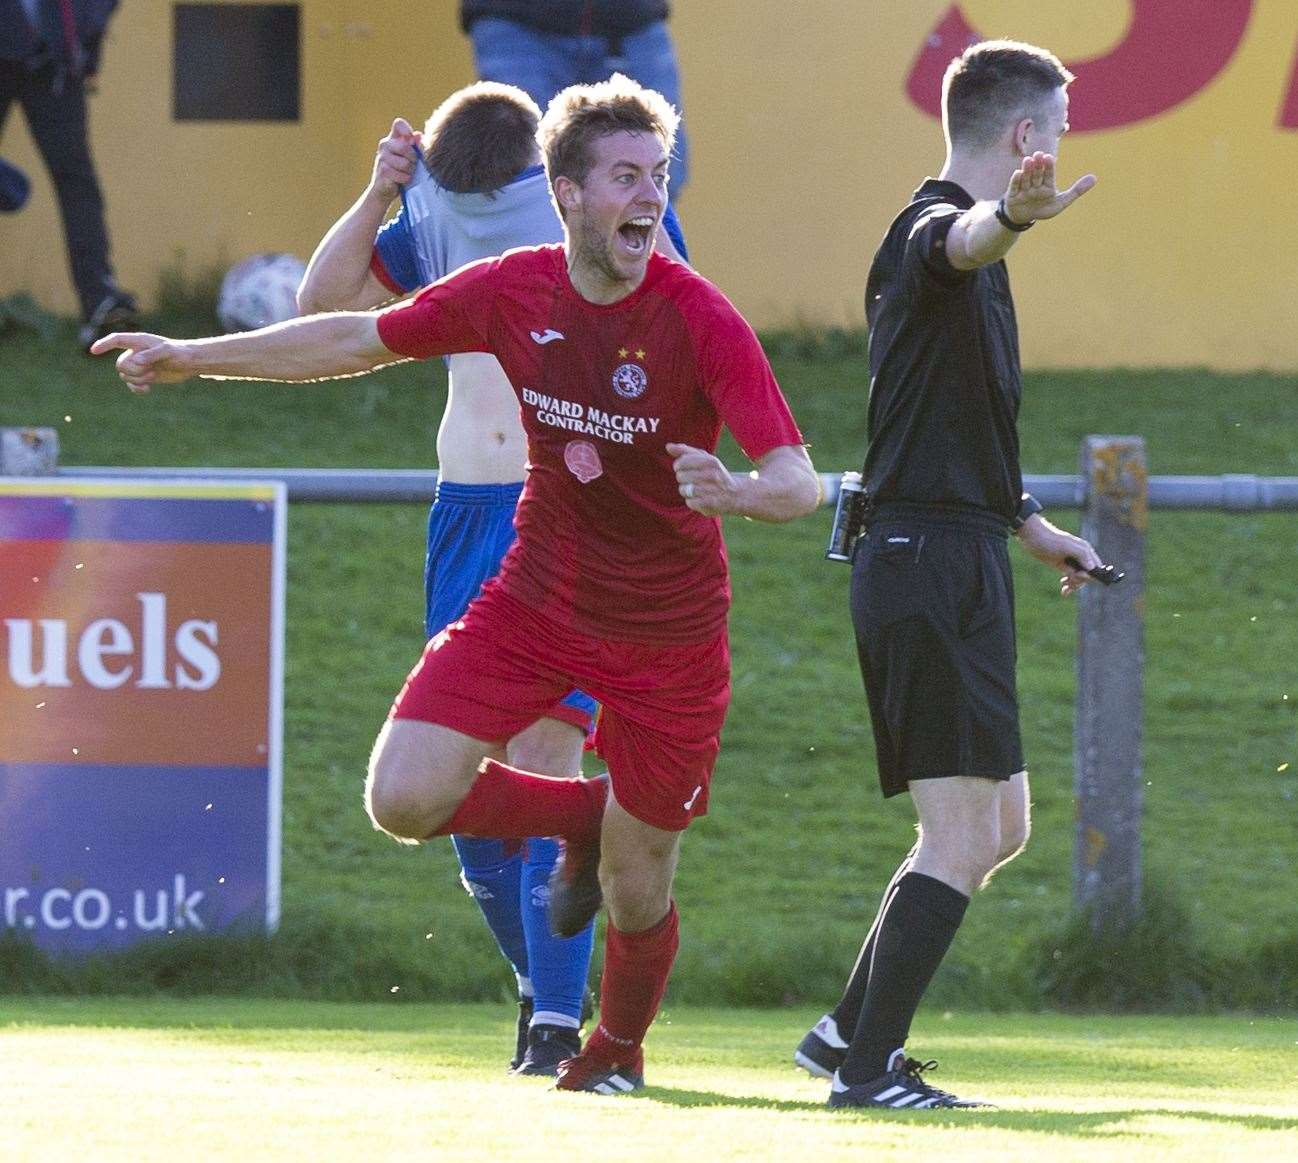 Martin Maclean scored the winner.